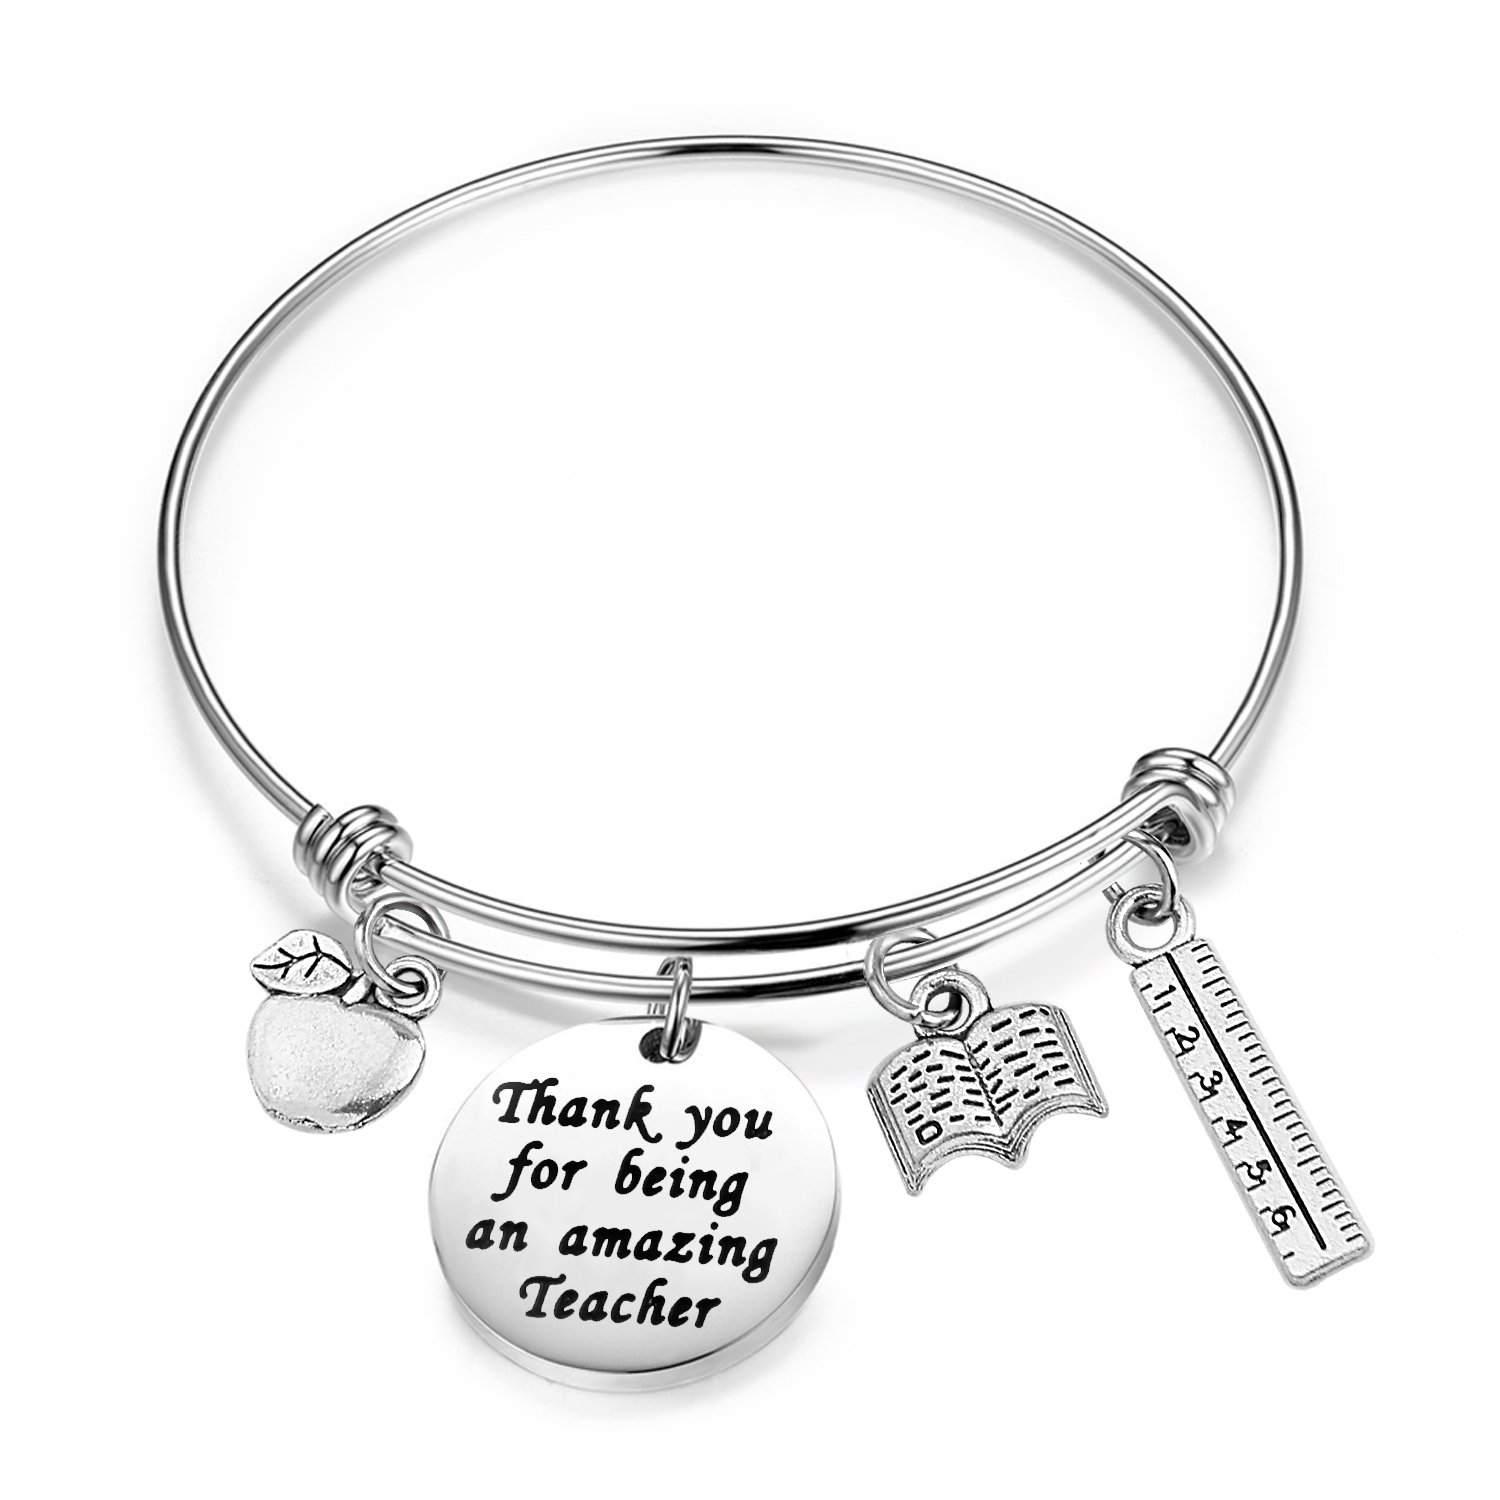 cheap teacher apple find teacher apple deals on line at alibaba 4 X 4 Memo Cube get quotations bobauna teacher bracelet with apple book ruler charms thank you appreciation gifts for teachers